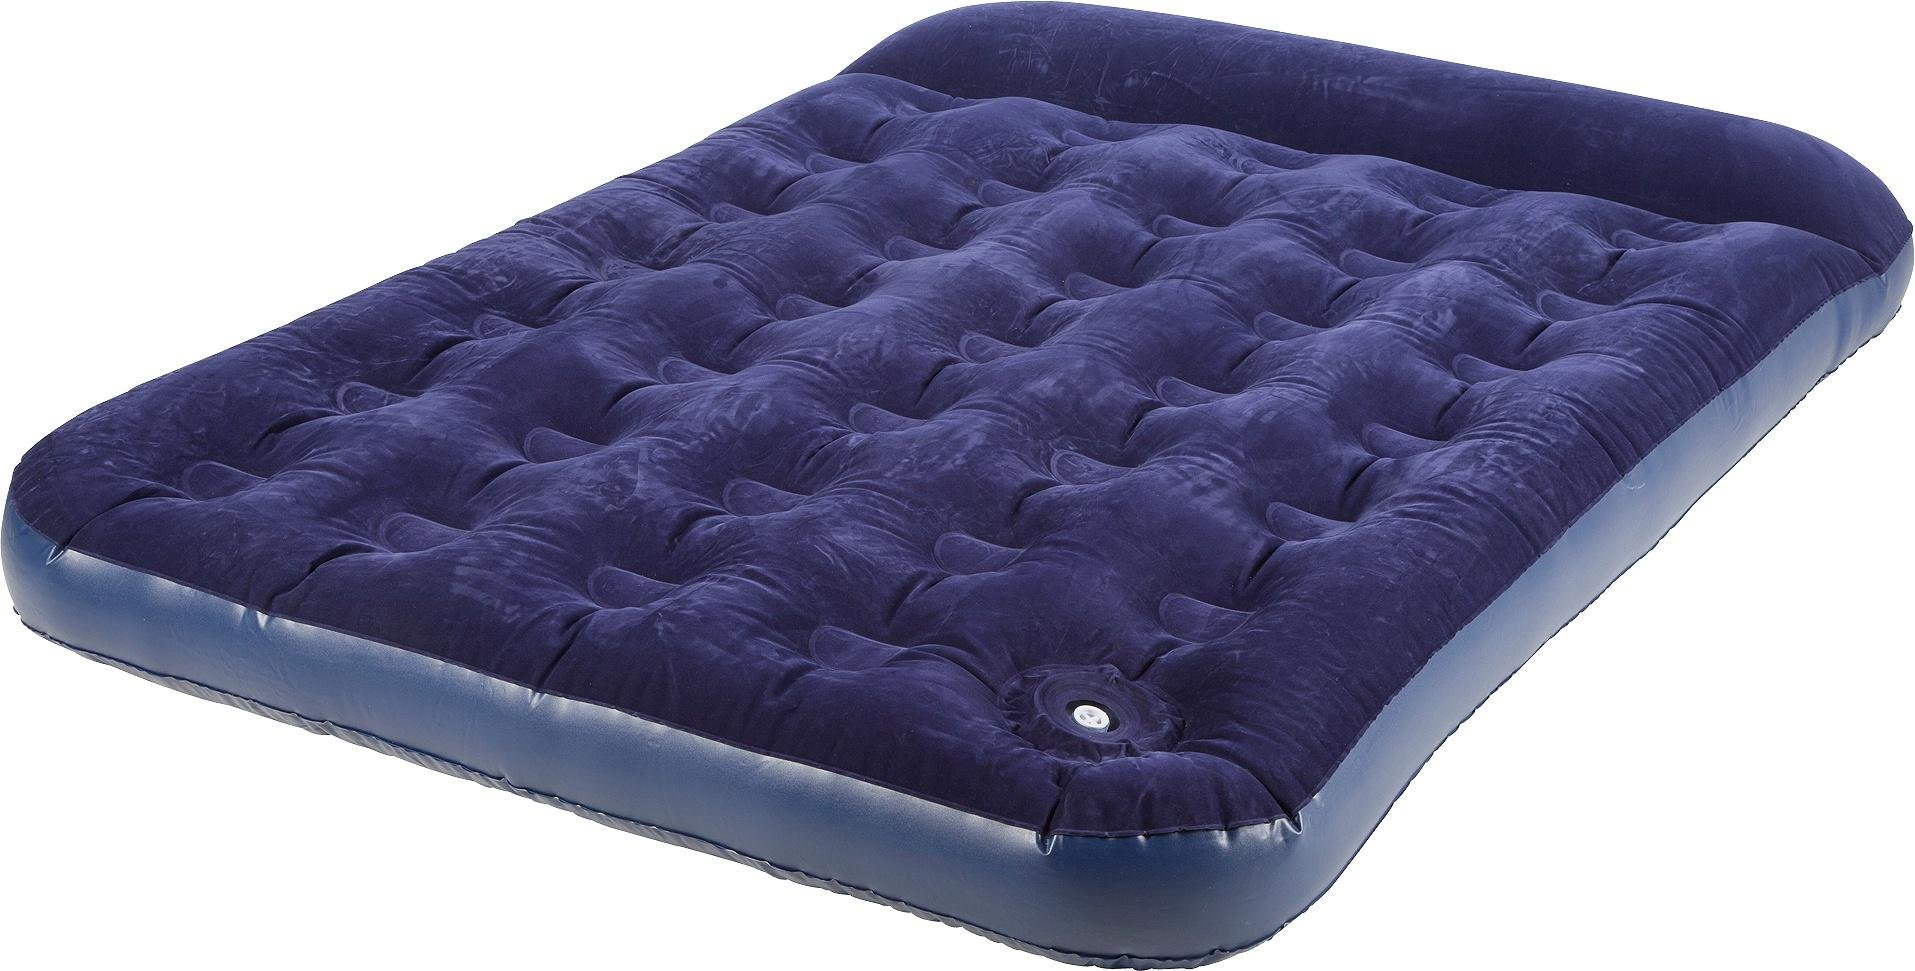 Image of Bestway - Air Bed with Built In Pump - Kingsize